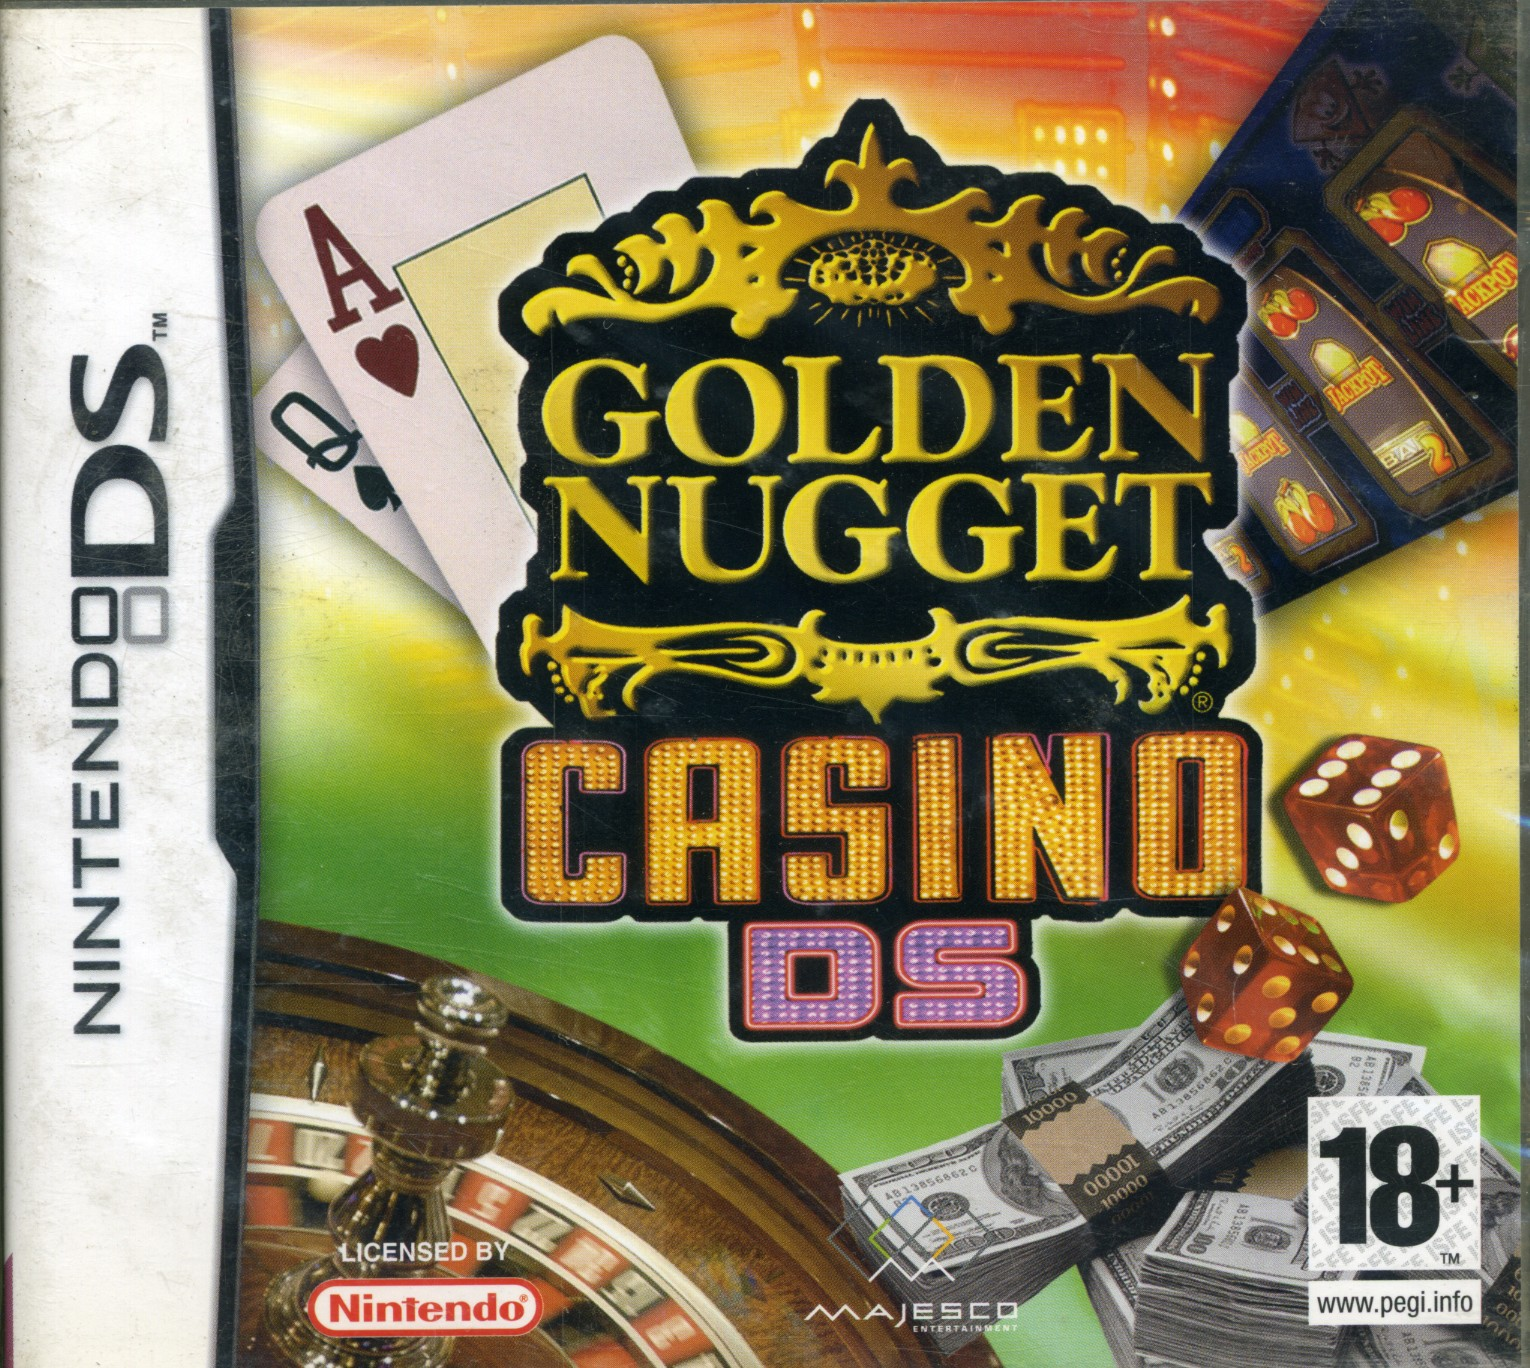 Nugget casino nintendo ds dj poker casino barcelona